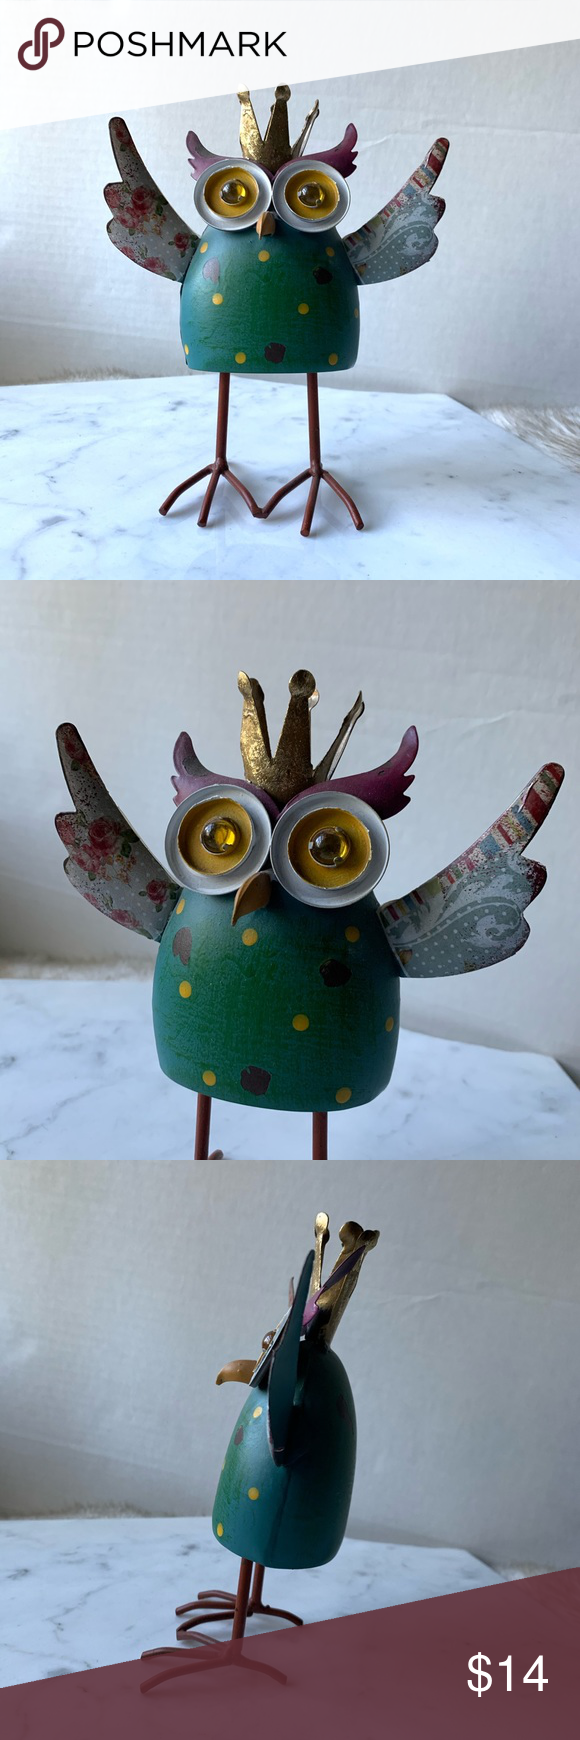 "Rustic Modern Bobble Metal Owl An adorable metal owl Knick knack. Has a hidden spring so it bobbles back and forth. Multiple colors and prints. Lightweight metal material. In great condition.  Measurements (approx) Height 8"" Width 6"" Accents Decor #knickknack Rustic Modern Bobble Metal Owl An adorable metal owl Knick knack. Has a hidden spring so it bobbles back and forth. Multiple colors and prints. Lightweight metal material. In great condition.  Measurements (approx) Height 8"" Width 6� #knickknack"